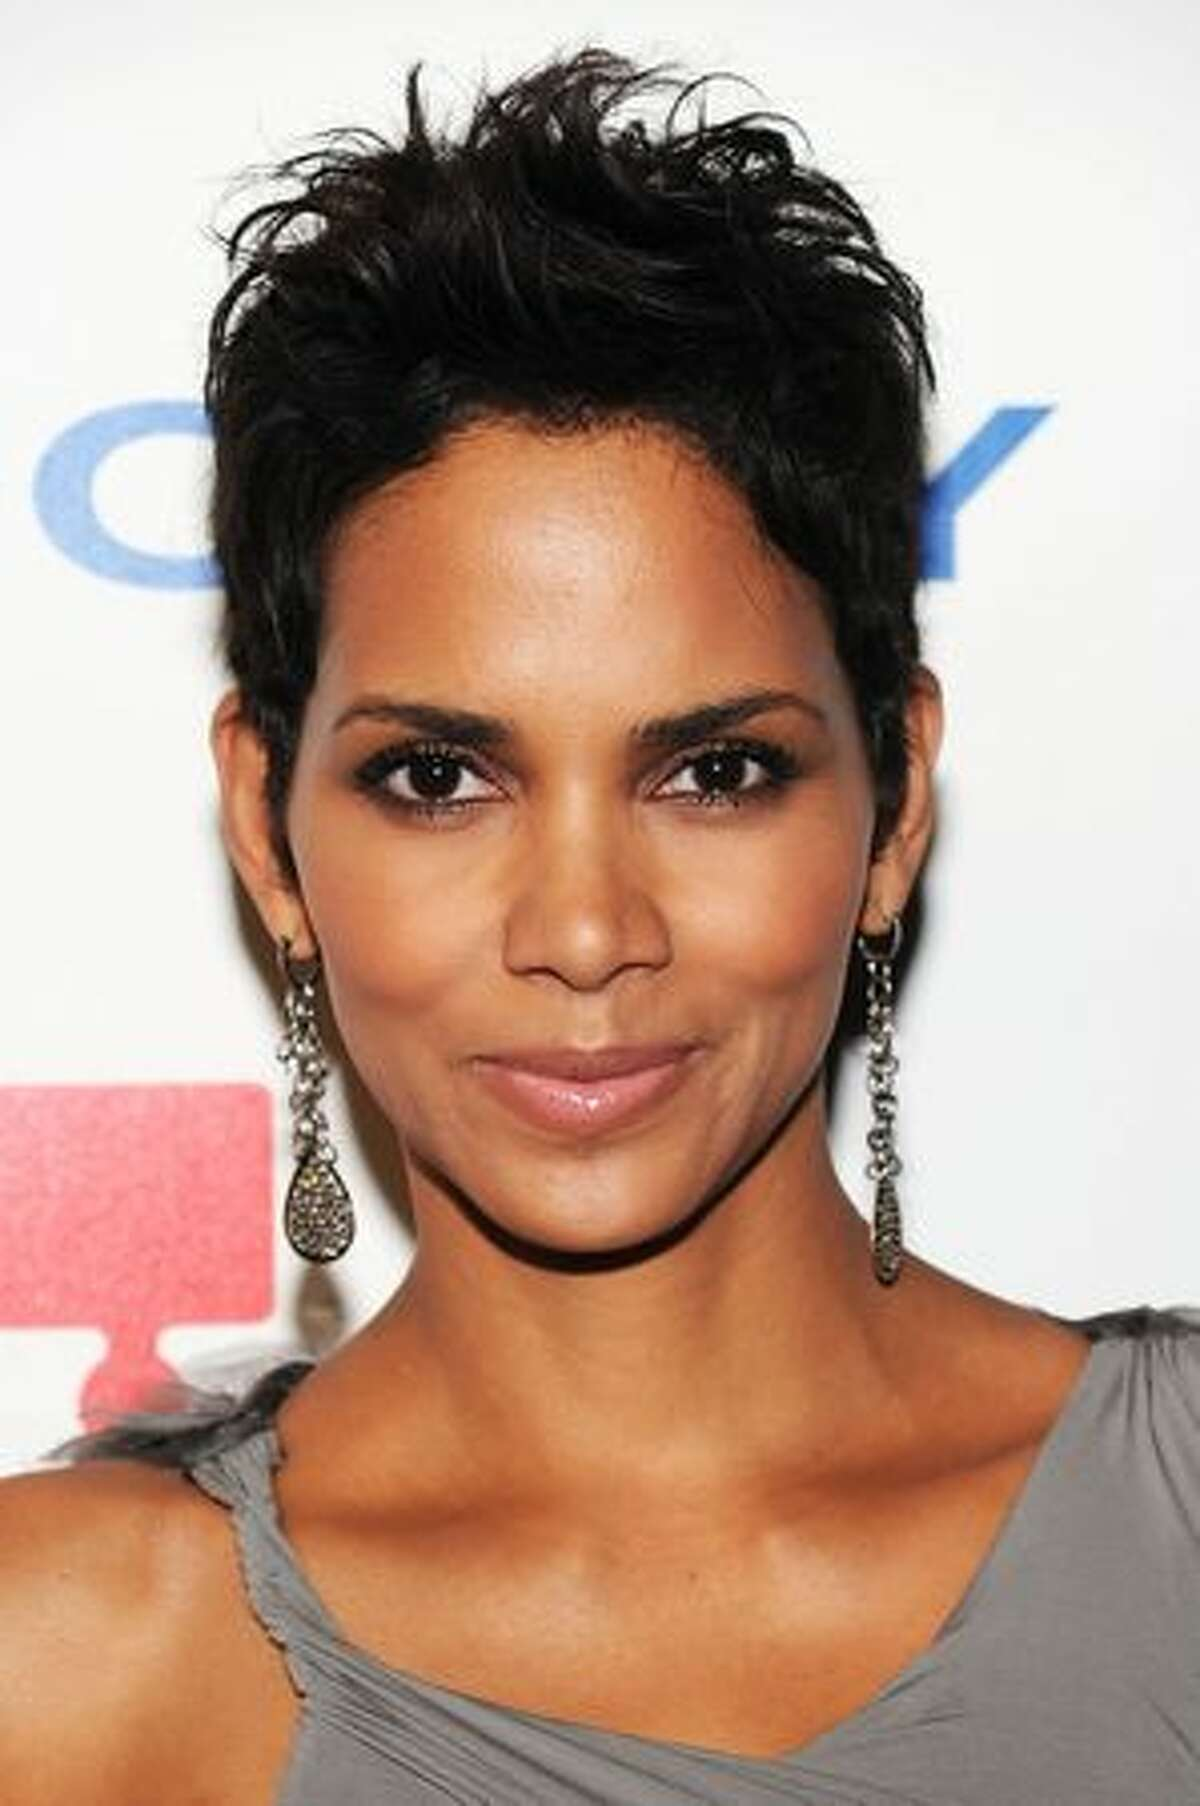 Actress Halle Berry attends DKMS' 4th Annual Gala: Linked Against Leukemia at Cipriani 42nd Street on April 29, 2010 in New York City.